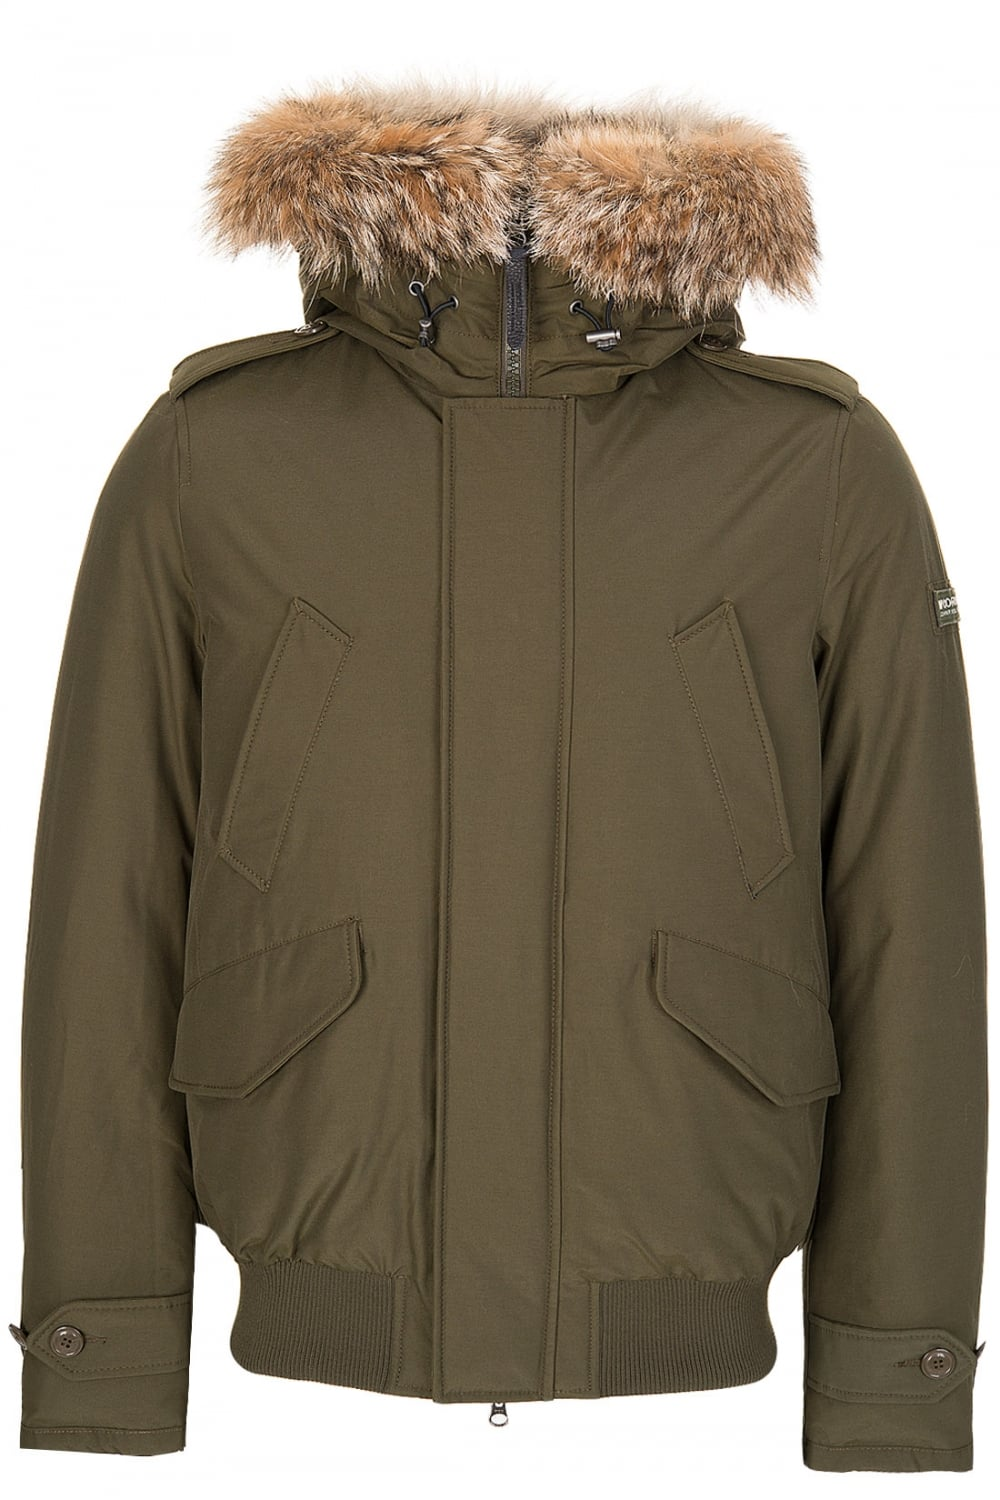 woolrich polar jacket woolrich from circle fashion uk. Black Bedroom Furniture Sets. Home Design Ideas